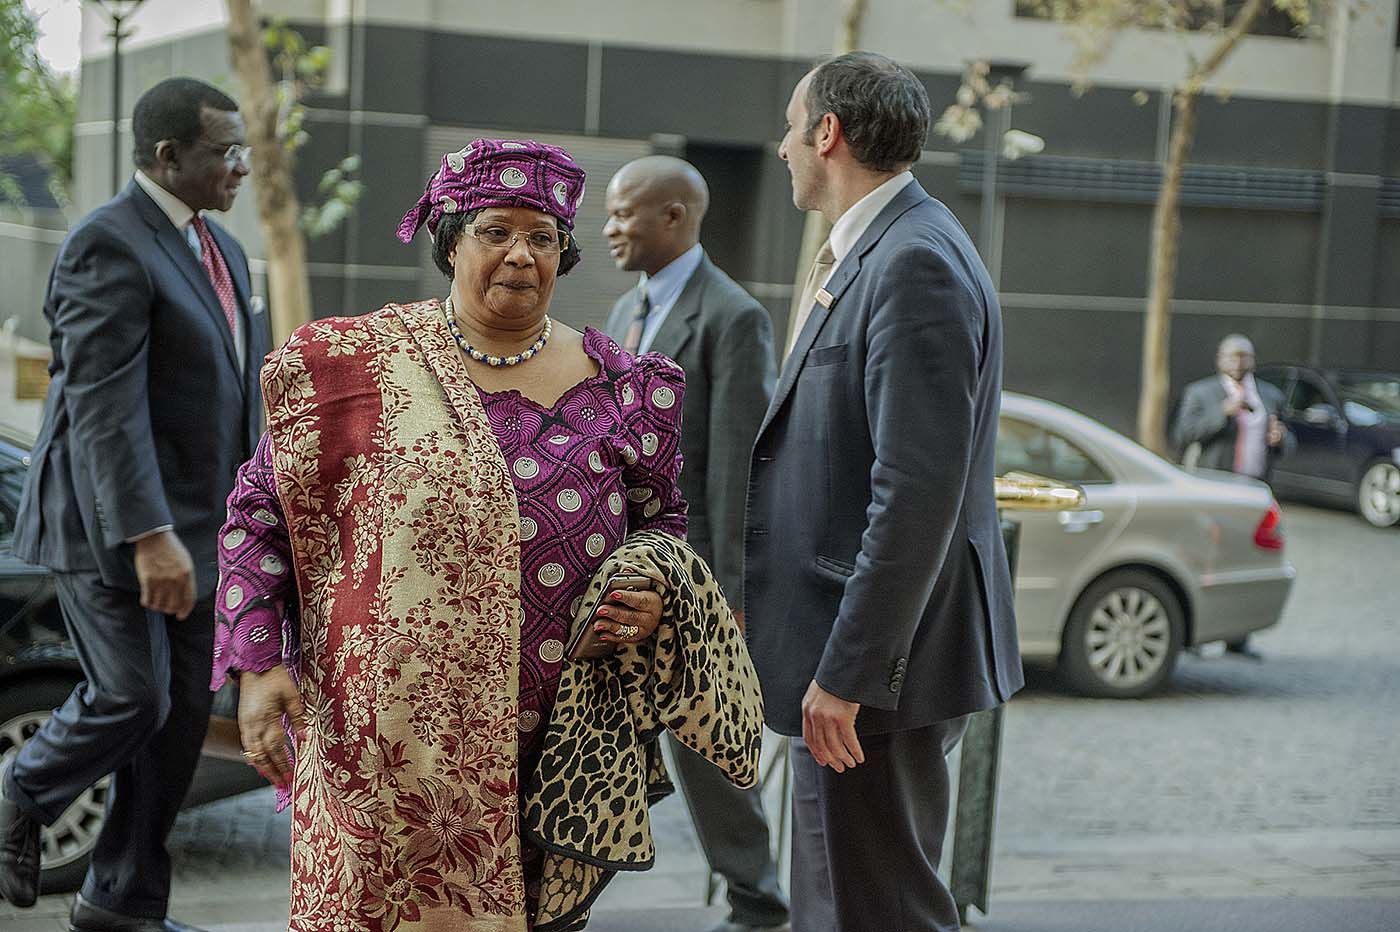 The former President of Malawi, Joyce Banda, arrives for the meeting of the Champions.